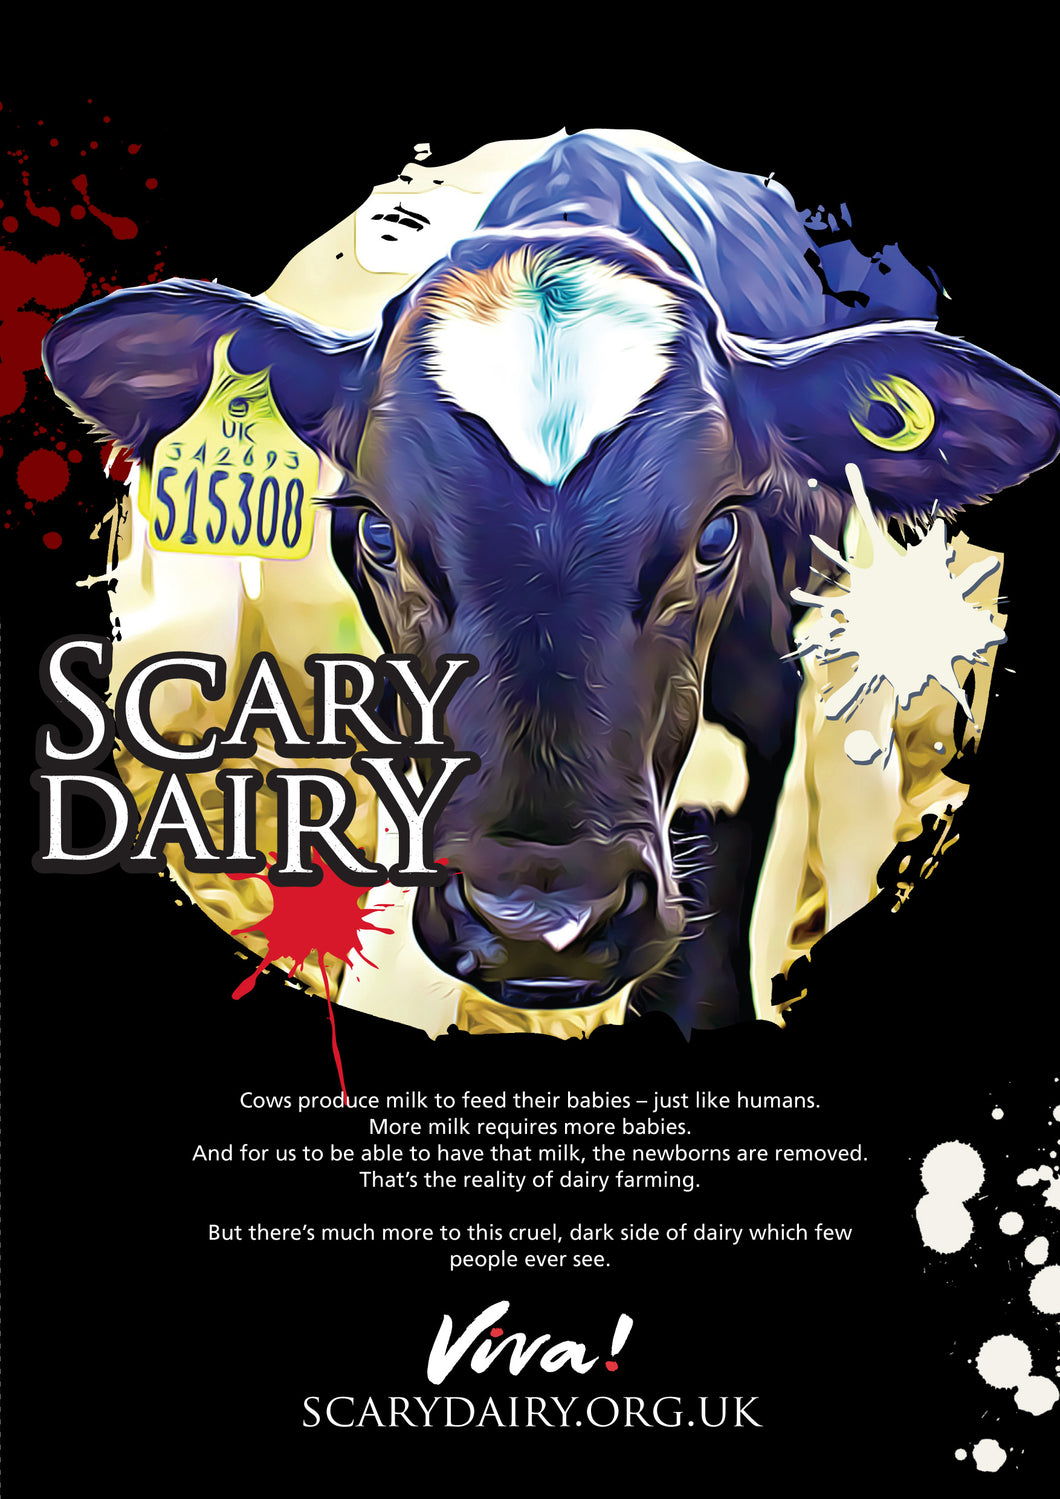 Scary Dairy leaflets x 50